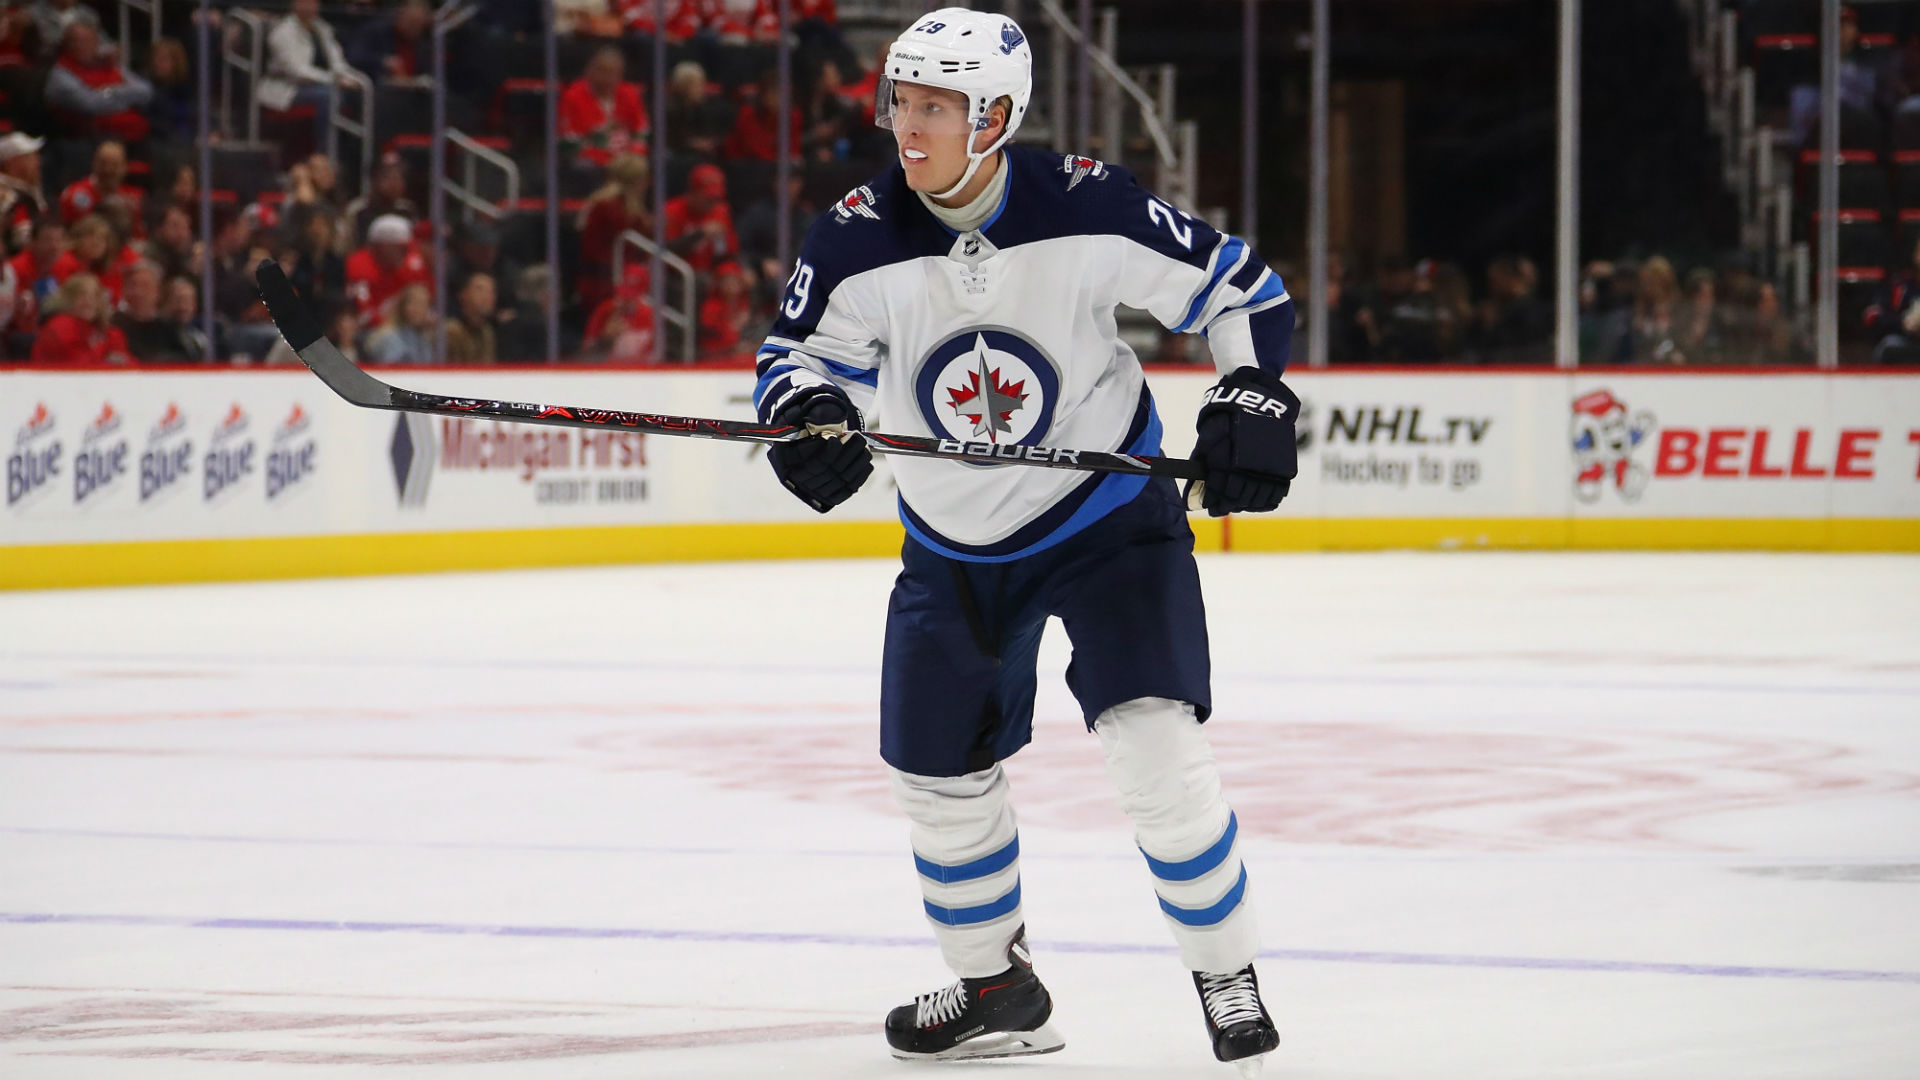 Winnipeg Jets Patrik Laine On Possible Season Return My Game S Probably Going To Look Terrible Sporting News